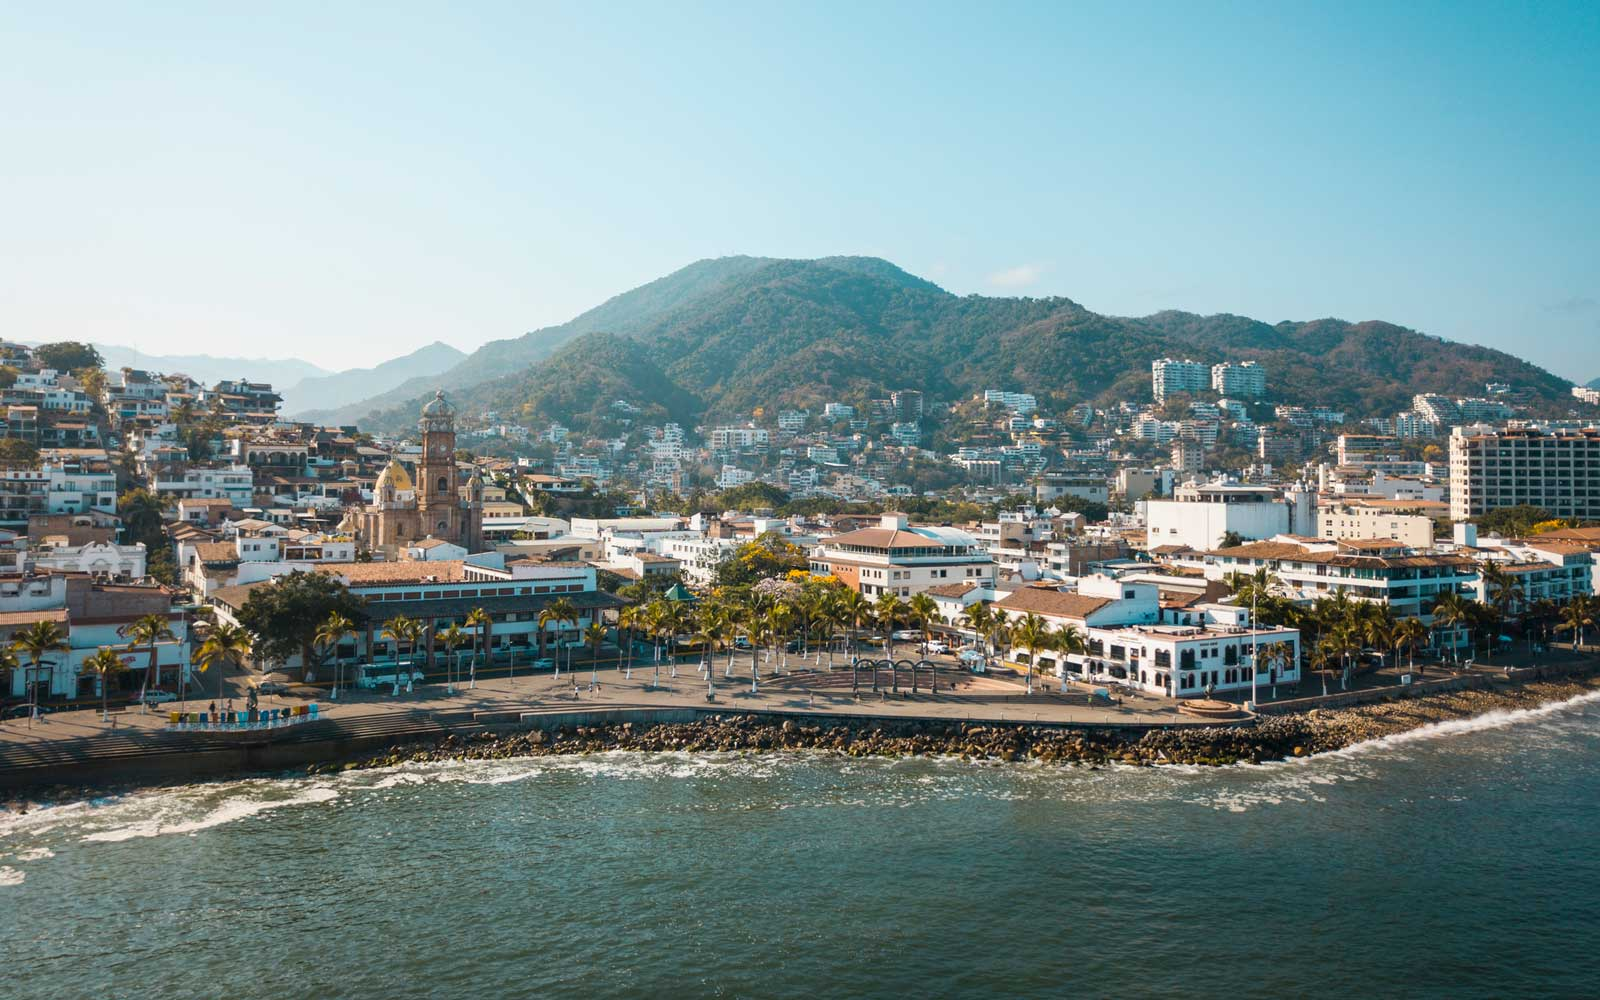 Mexico, Jalisco, Puerto Vallarta, Old town, Church of Our Lady of Guadalupe and El Malecon boardwalk